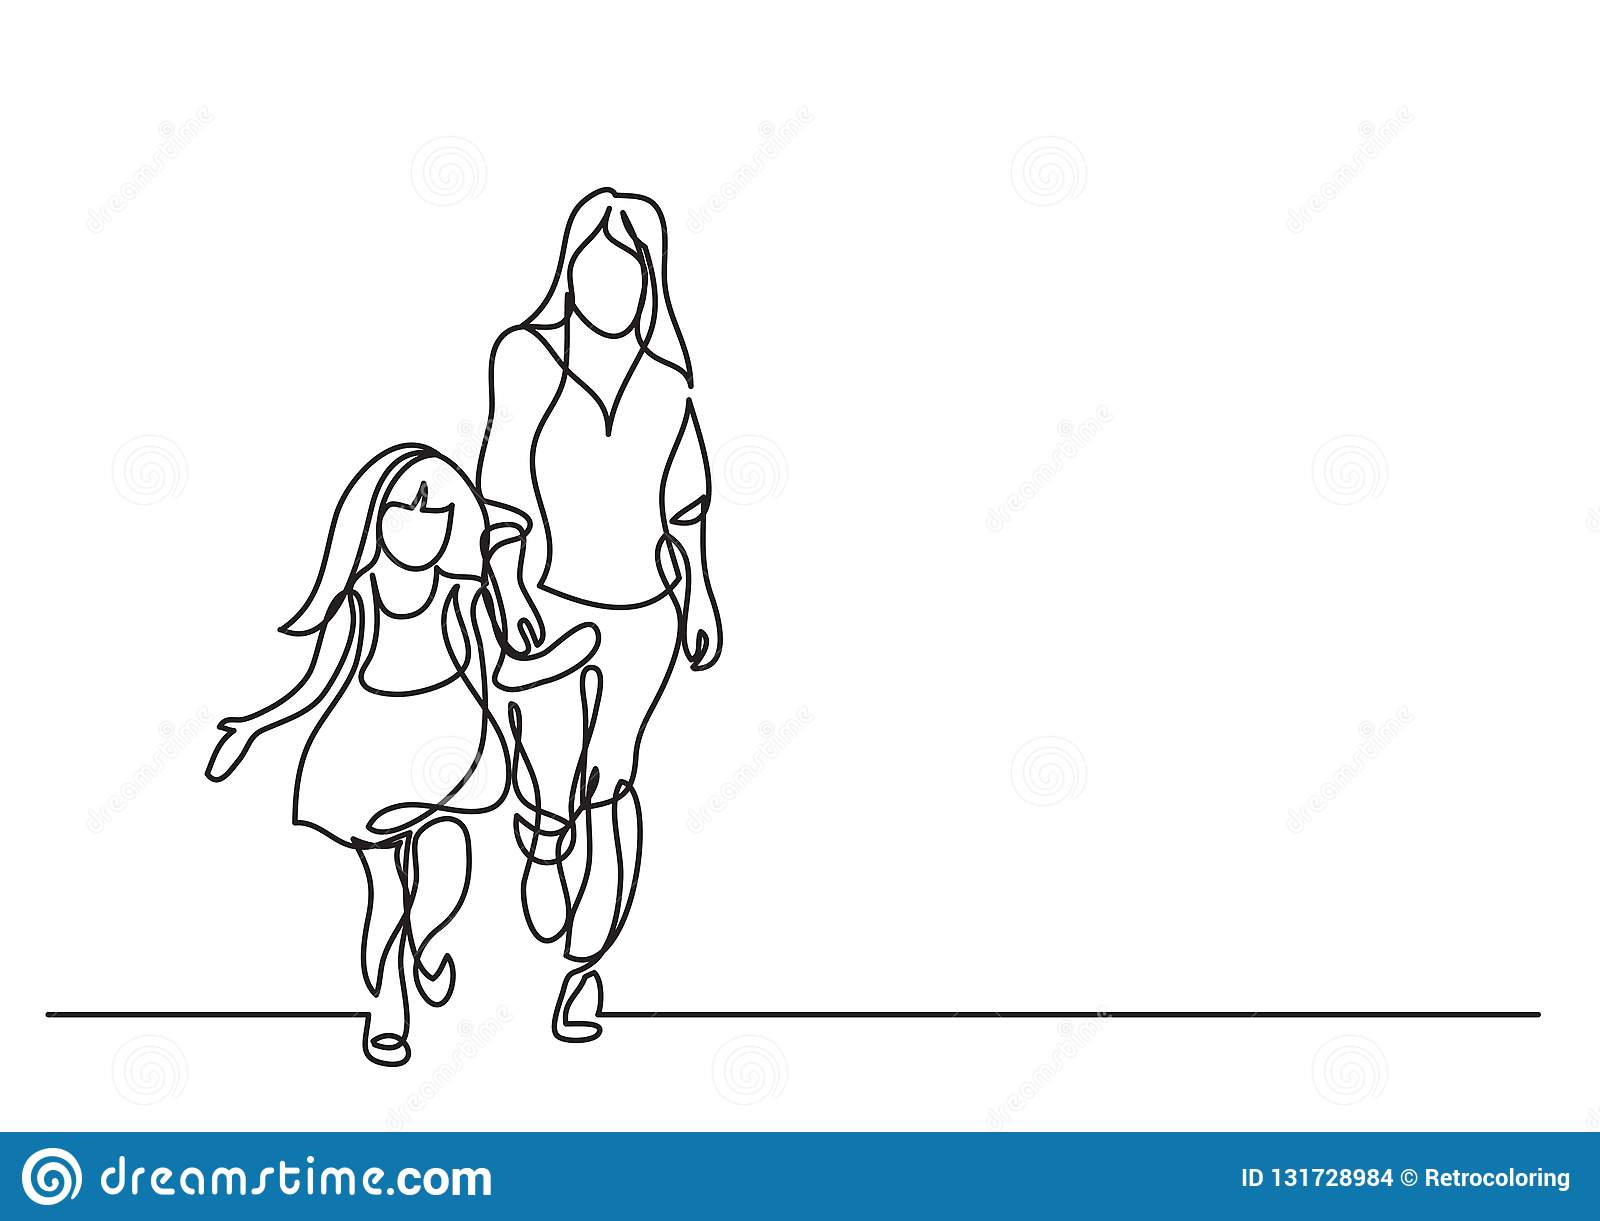 One Line Drawing Of Mother And Daughter Walking Together Stock